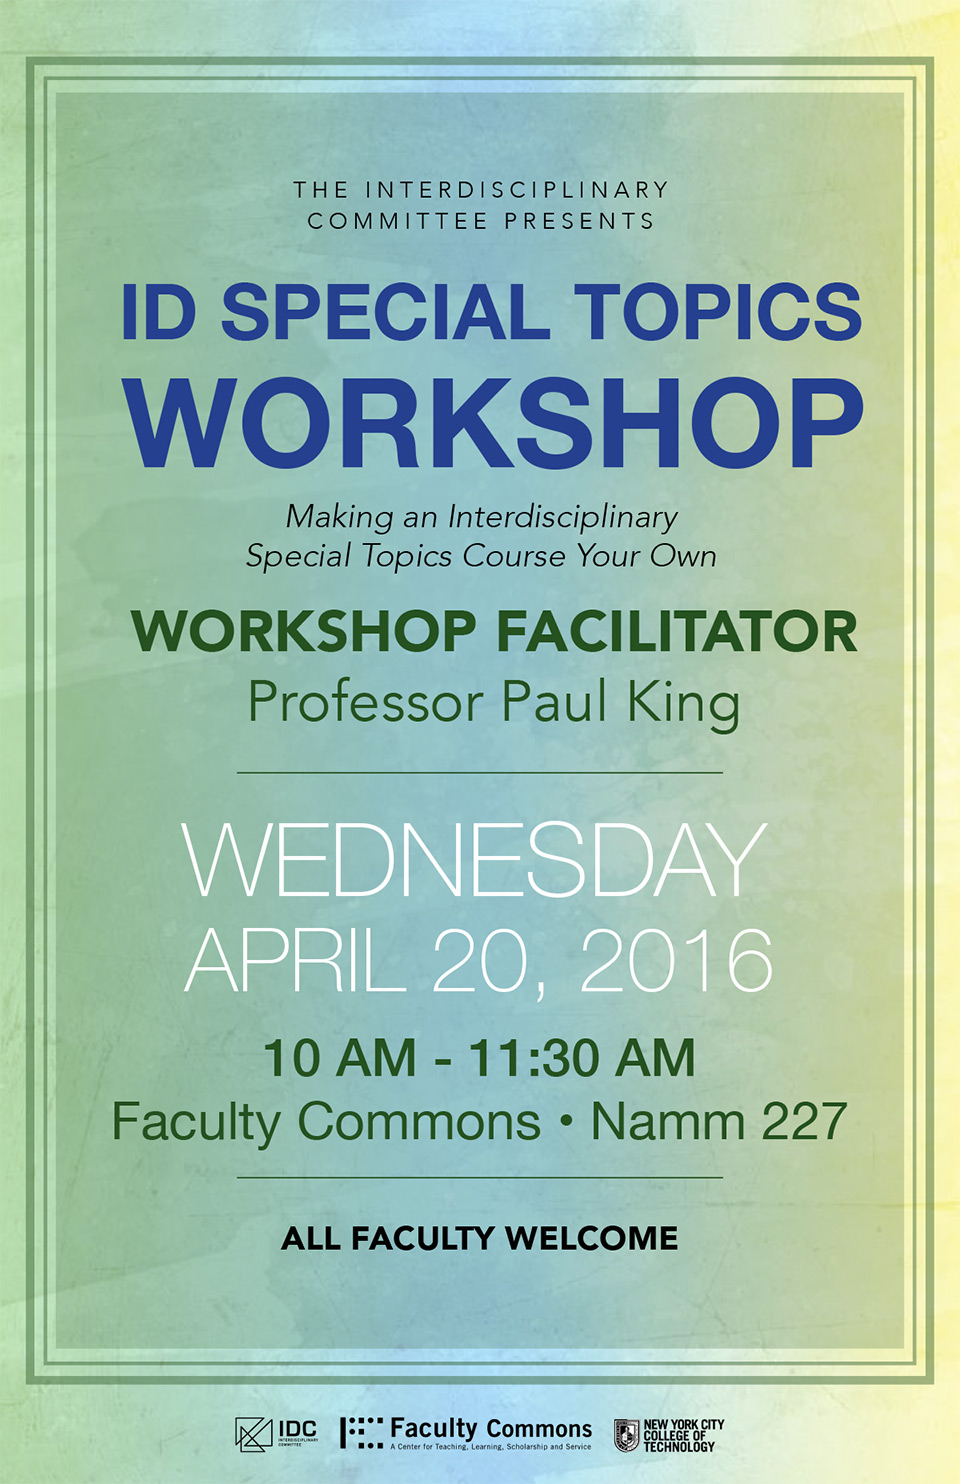 ID Special Topics Workshop 1